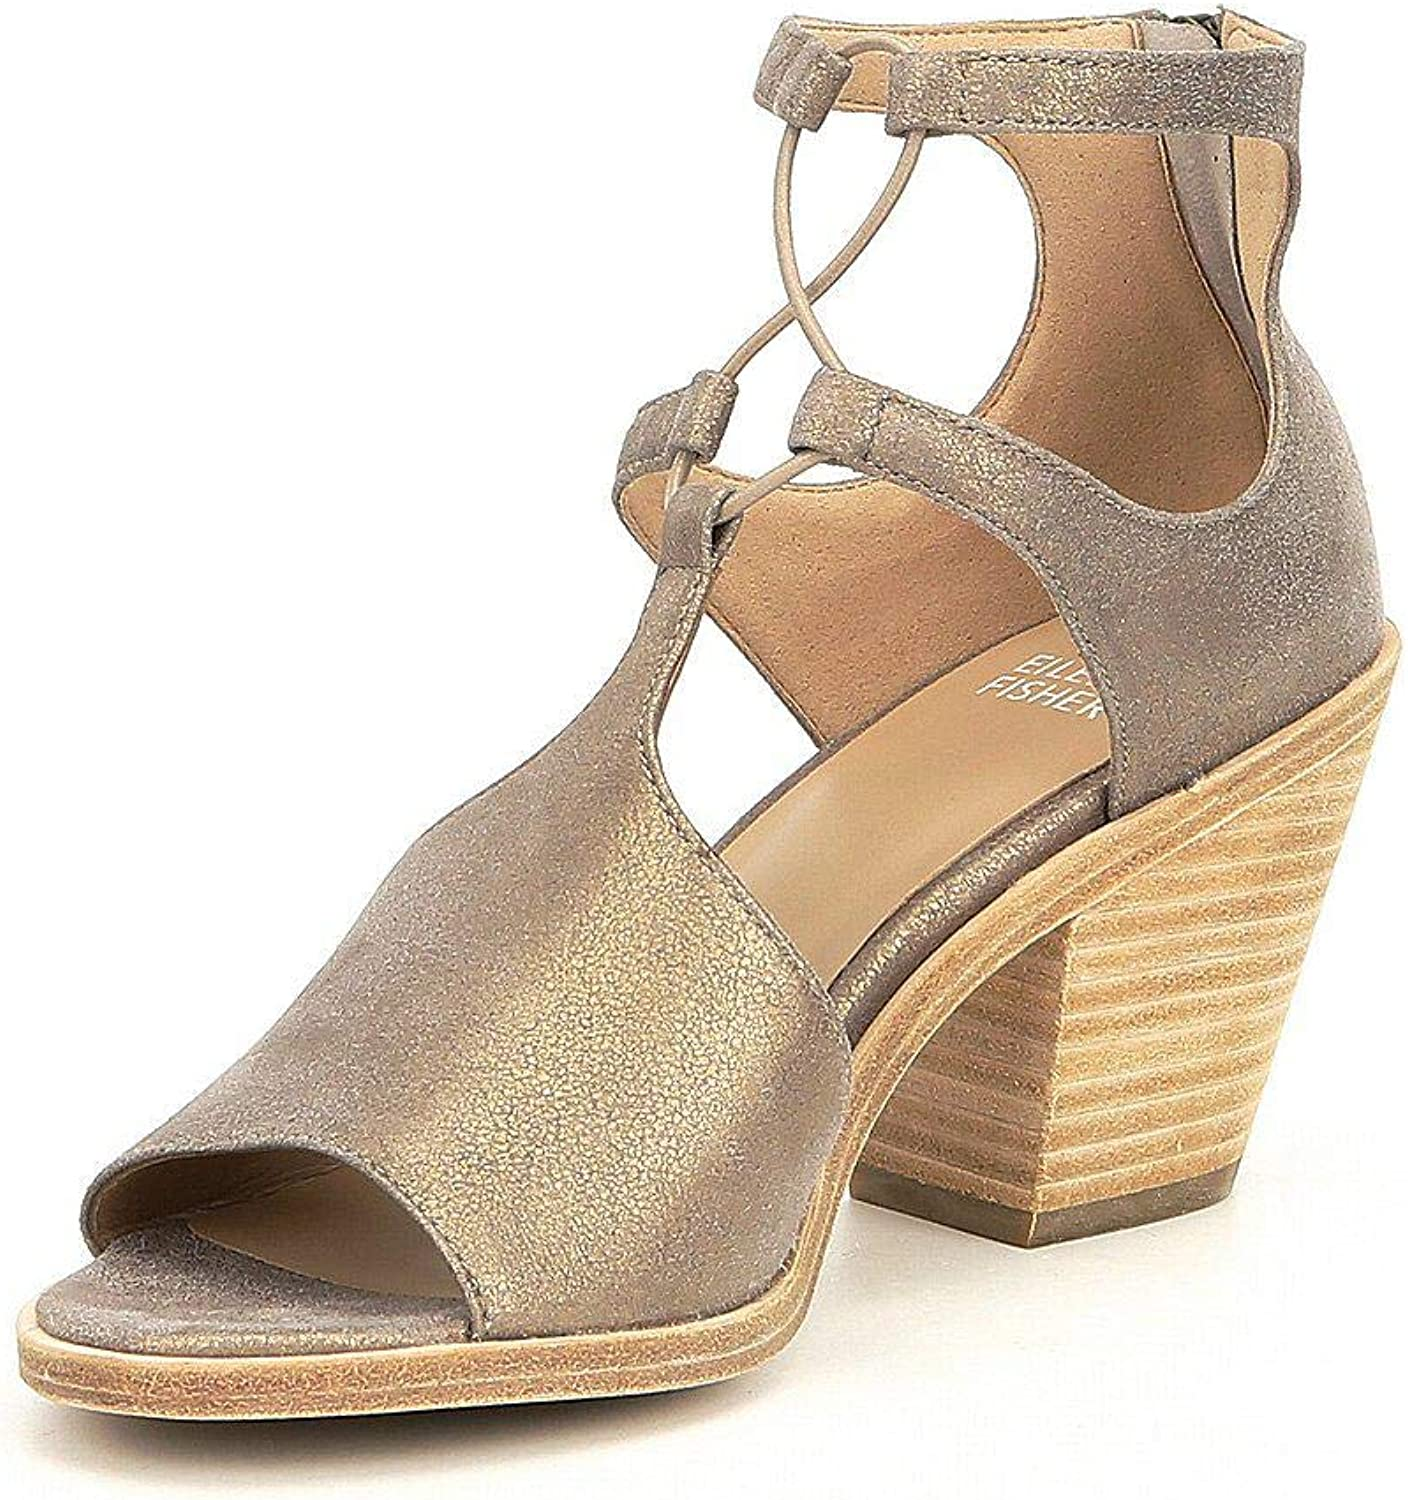 EileenFisher Womens Lou-Ms Suede Open Toe Casual Ankle Strap Sandals